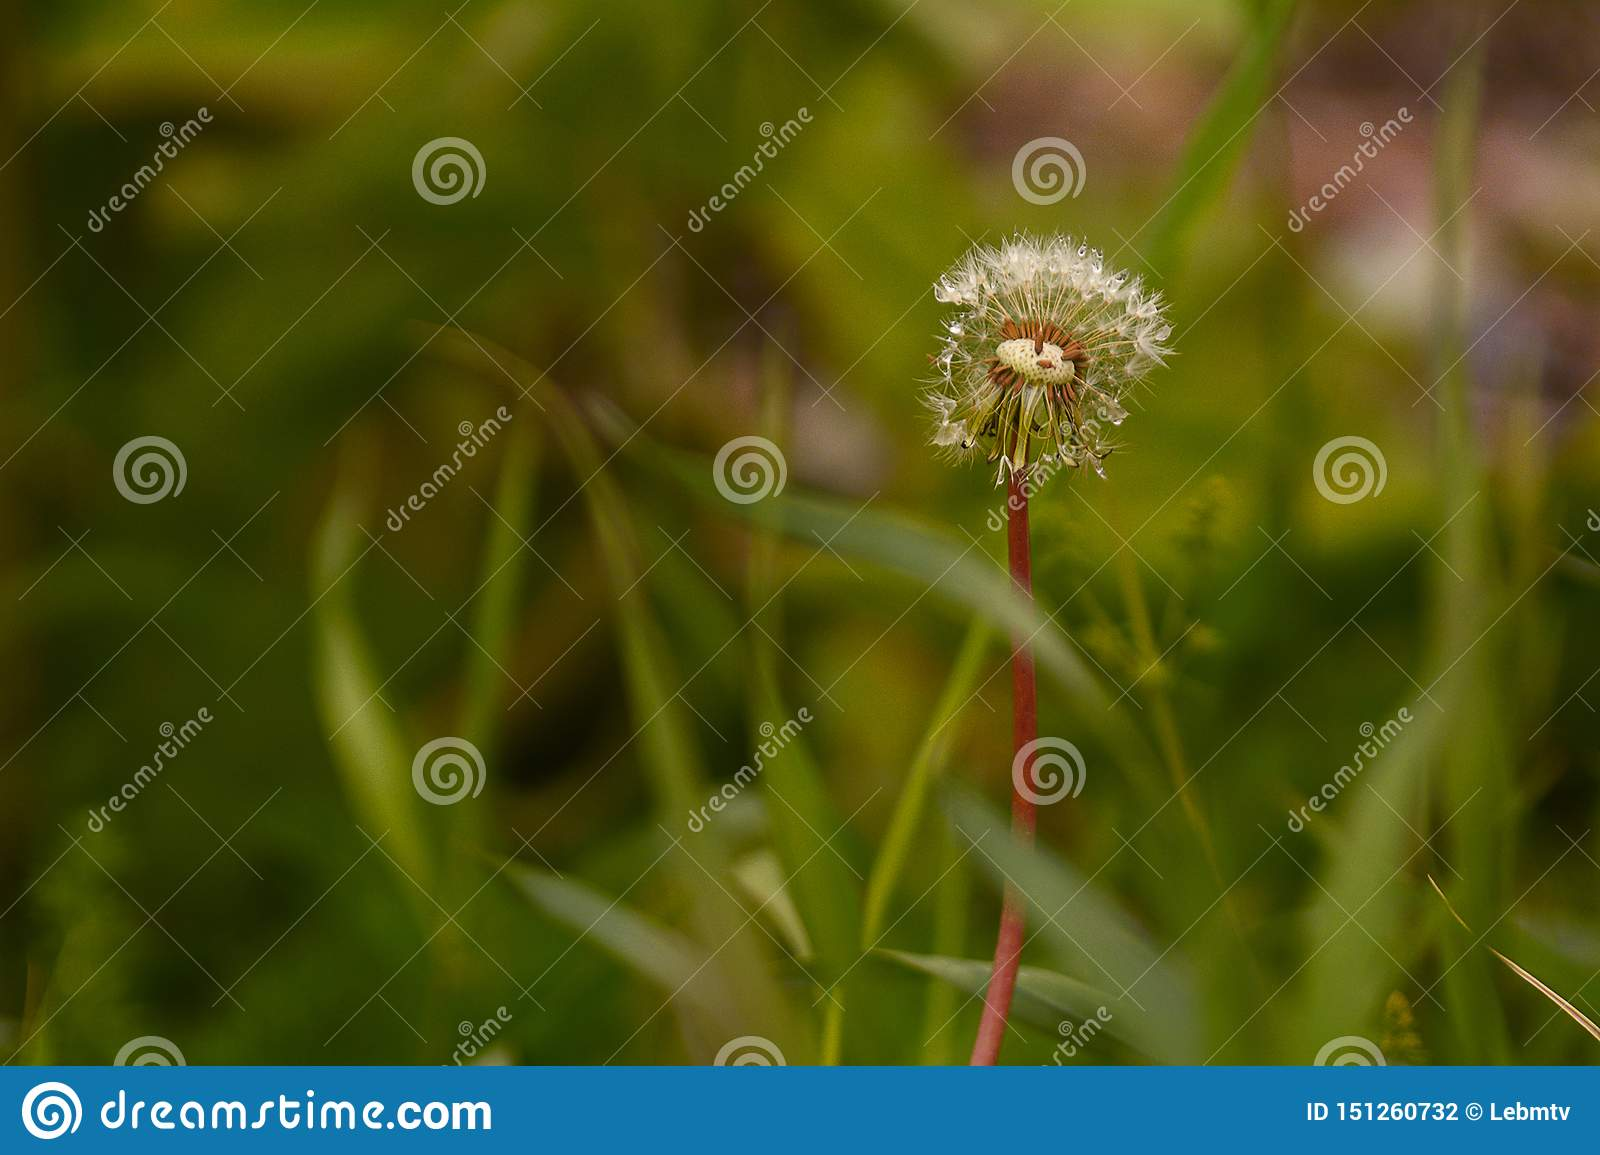 Lonely dandelion in the grass